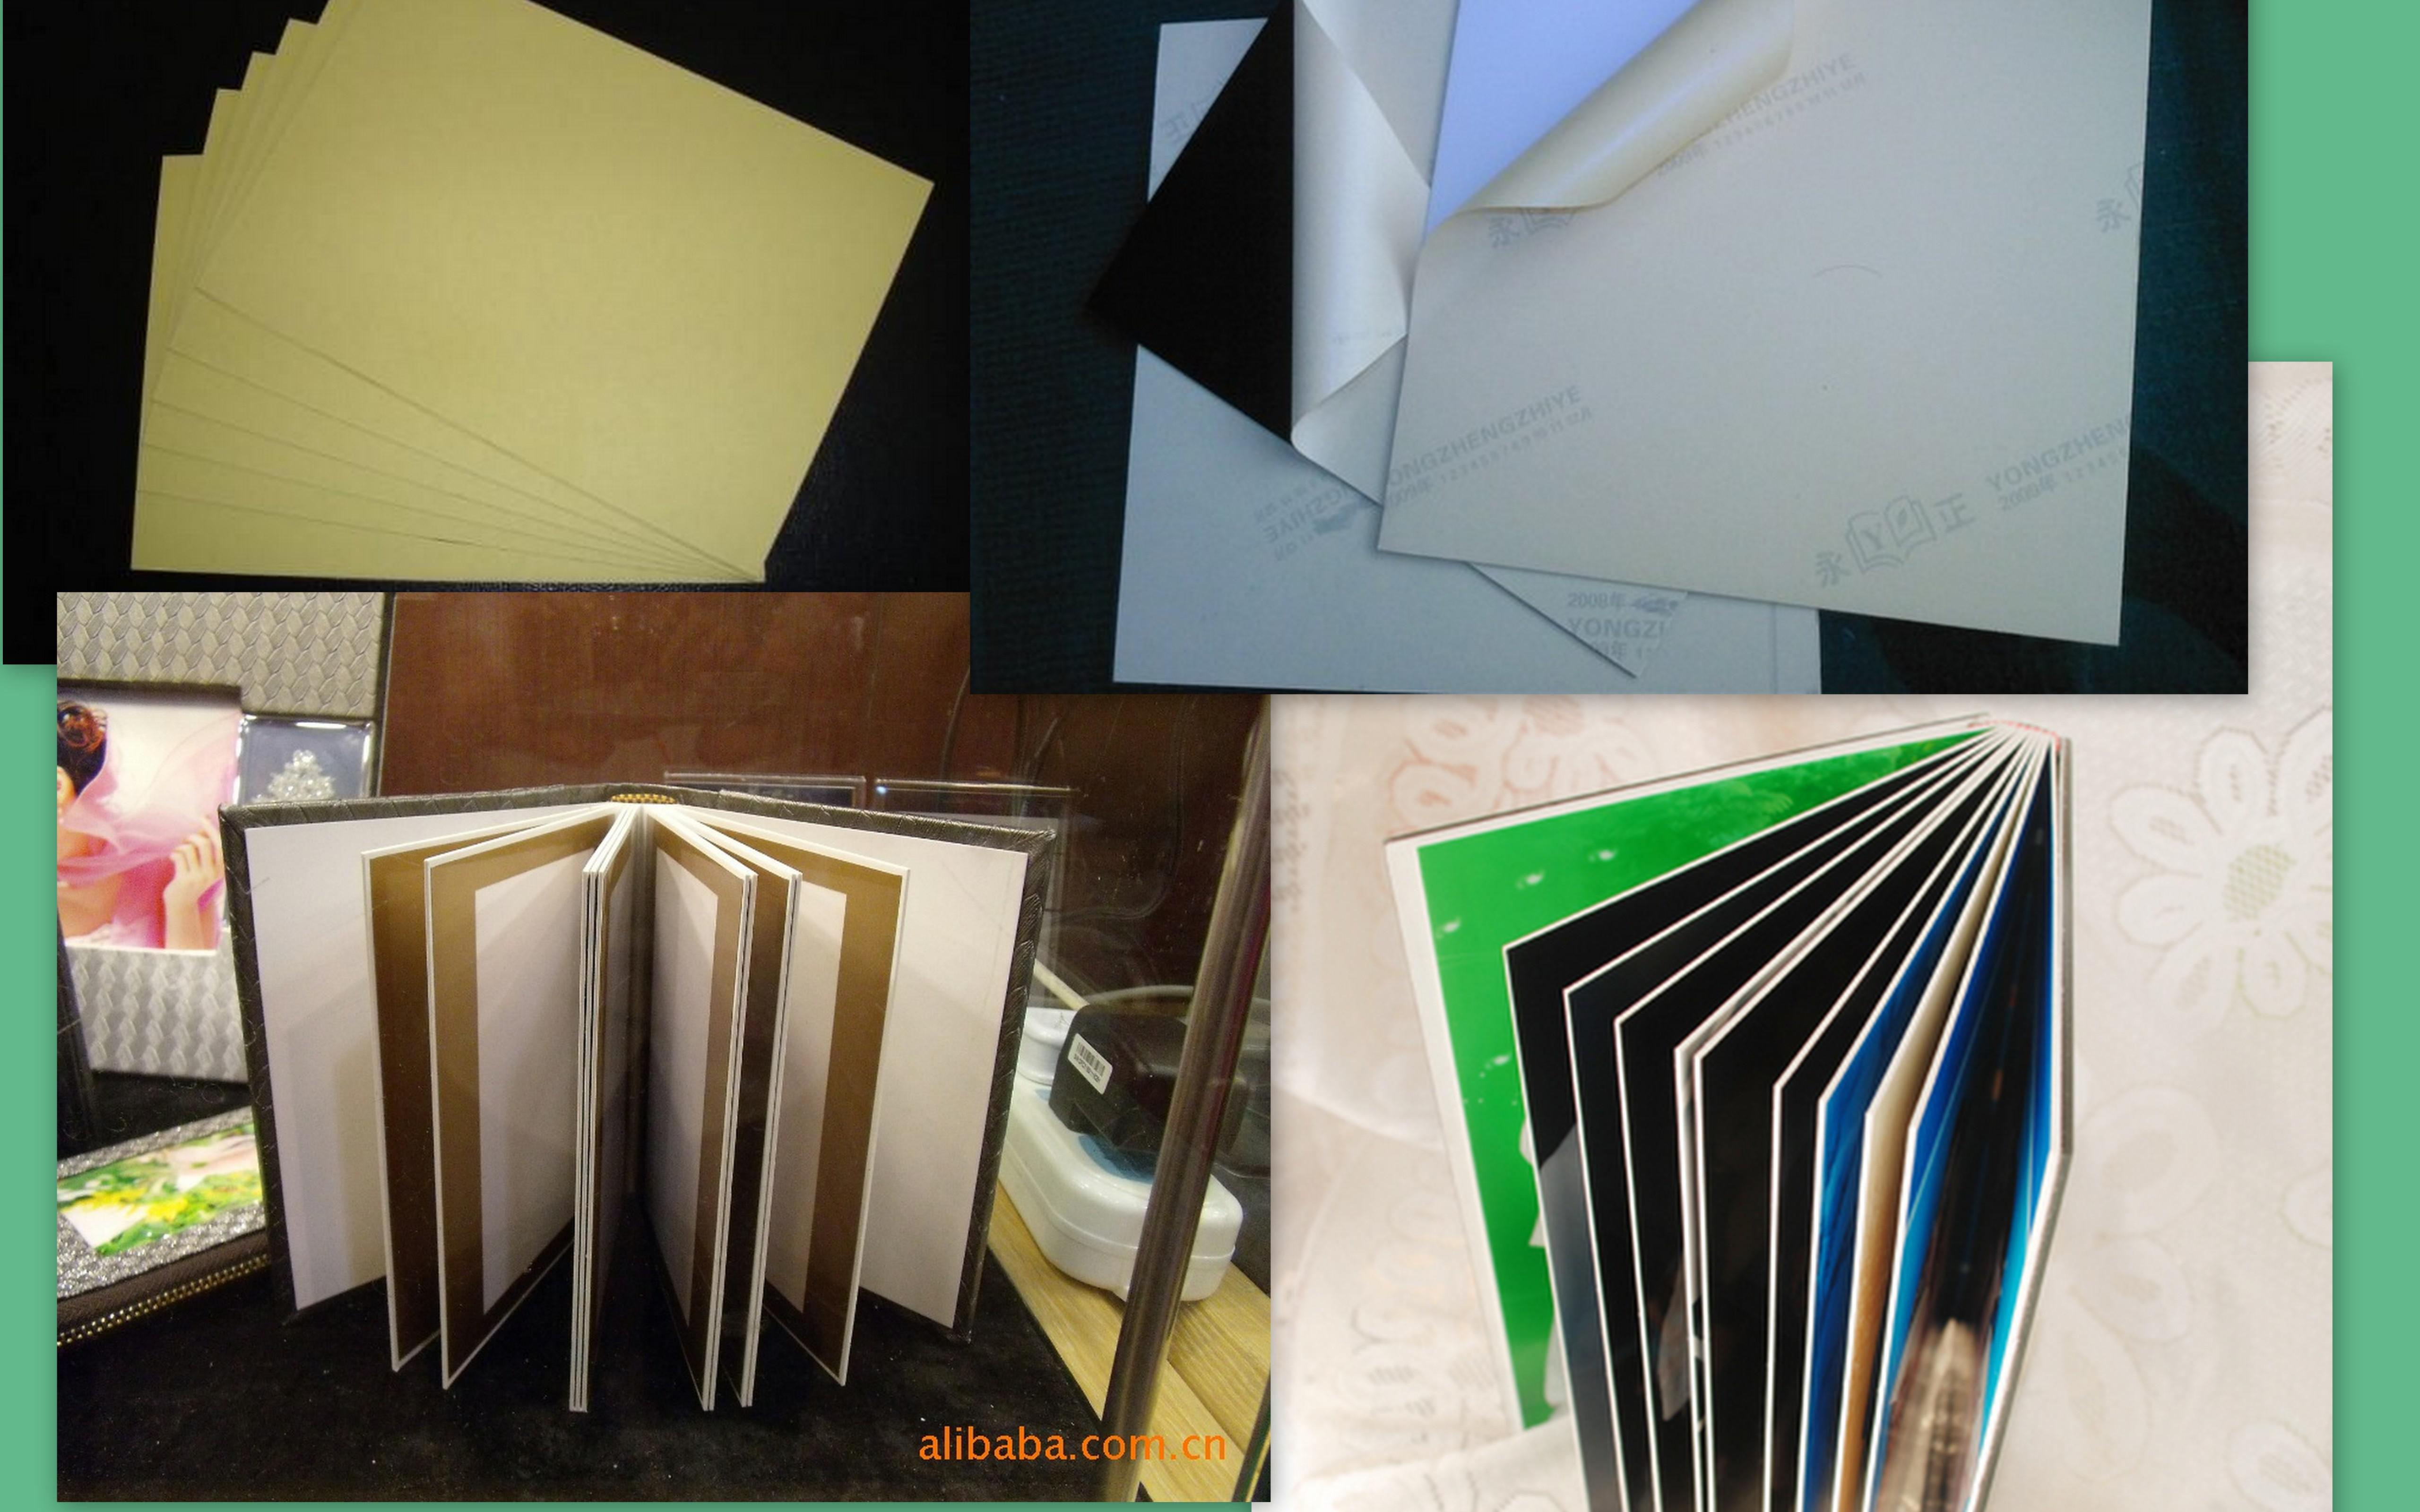 Album inner sheet/Foam PVC Sheet/Hard rigid self-adhesive PVC/High quality PVC album sheet /PVC album sheet/album consumable PVC